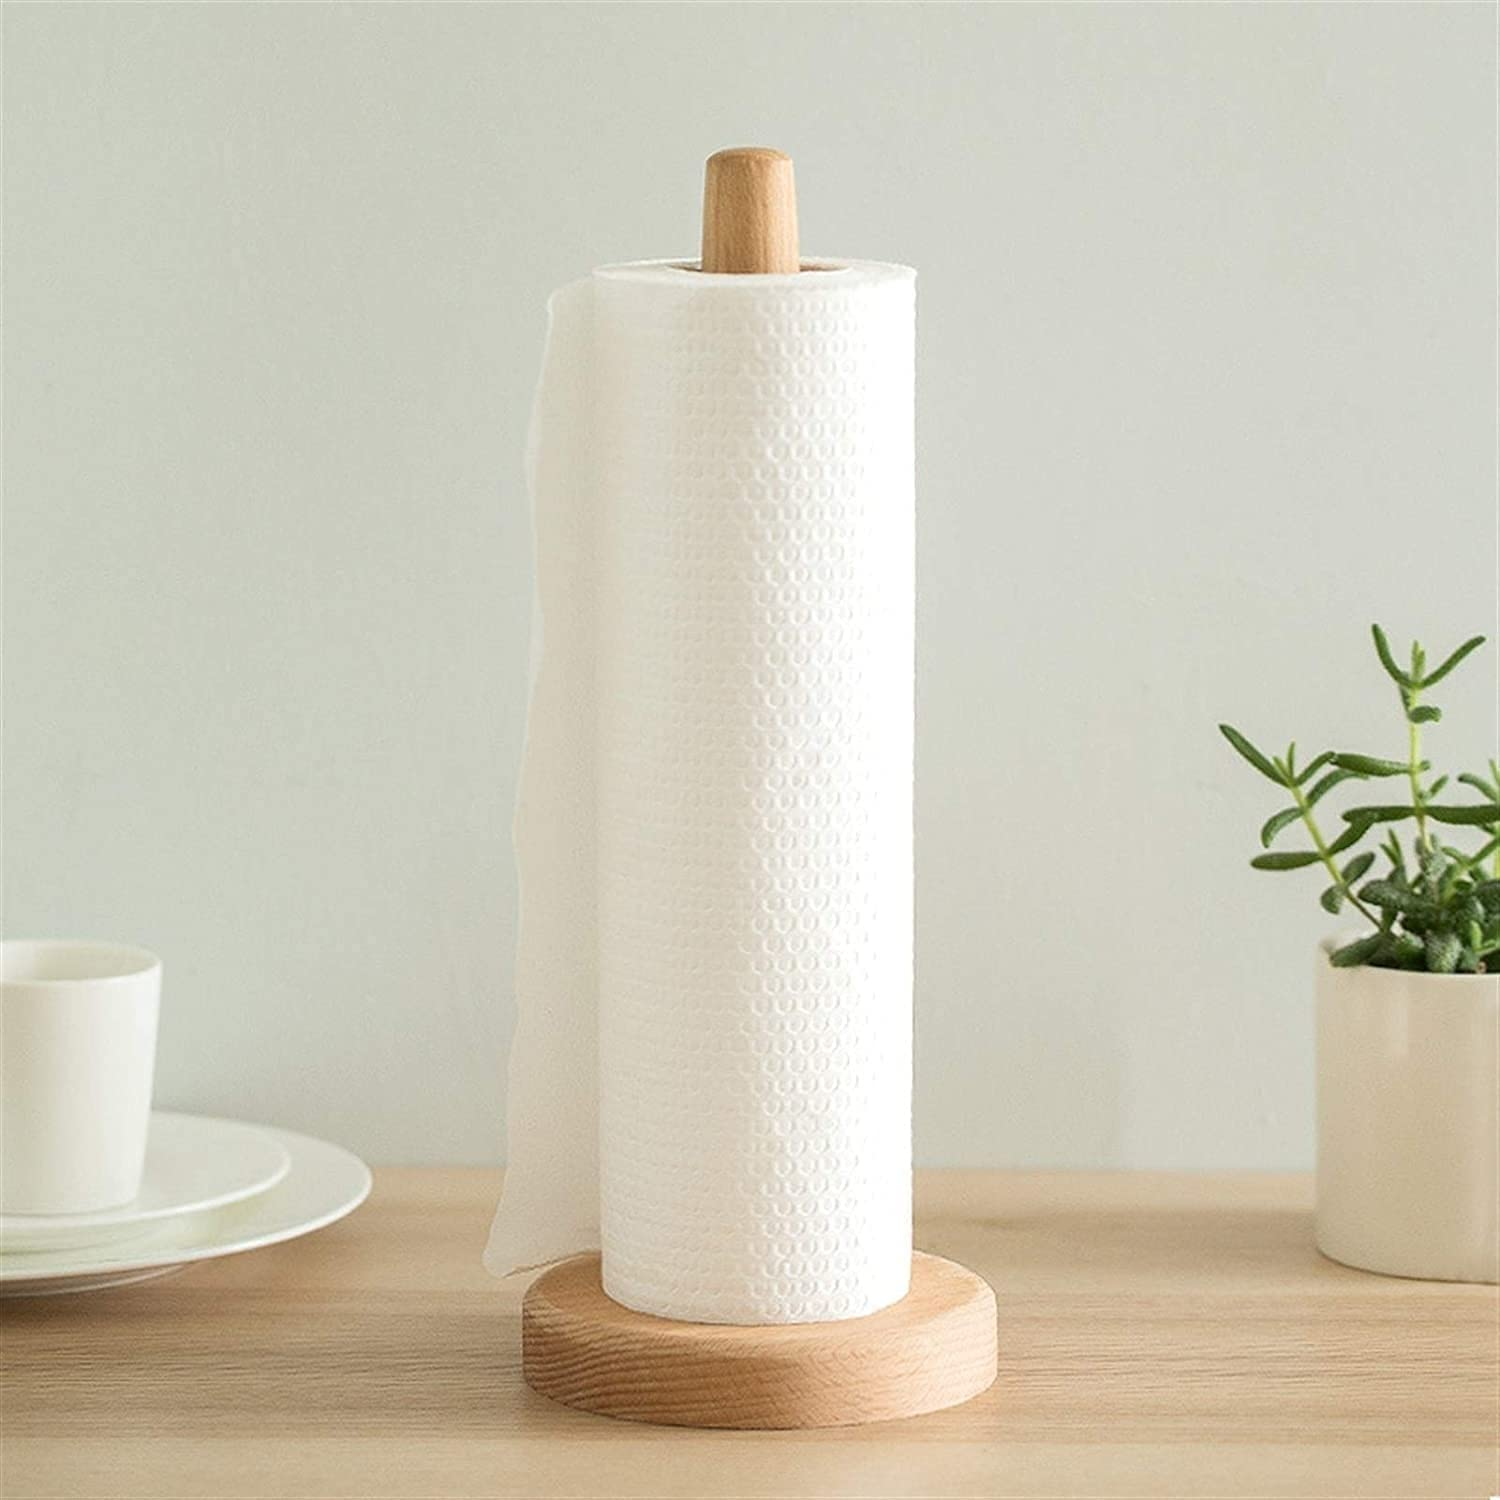 ZHJ kitchen roll dispenser Wooden Roll Los Free shipping / New Angeles Mall Kitch Towel Paper Holders